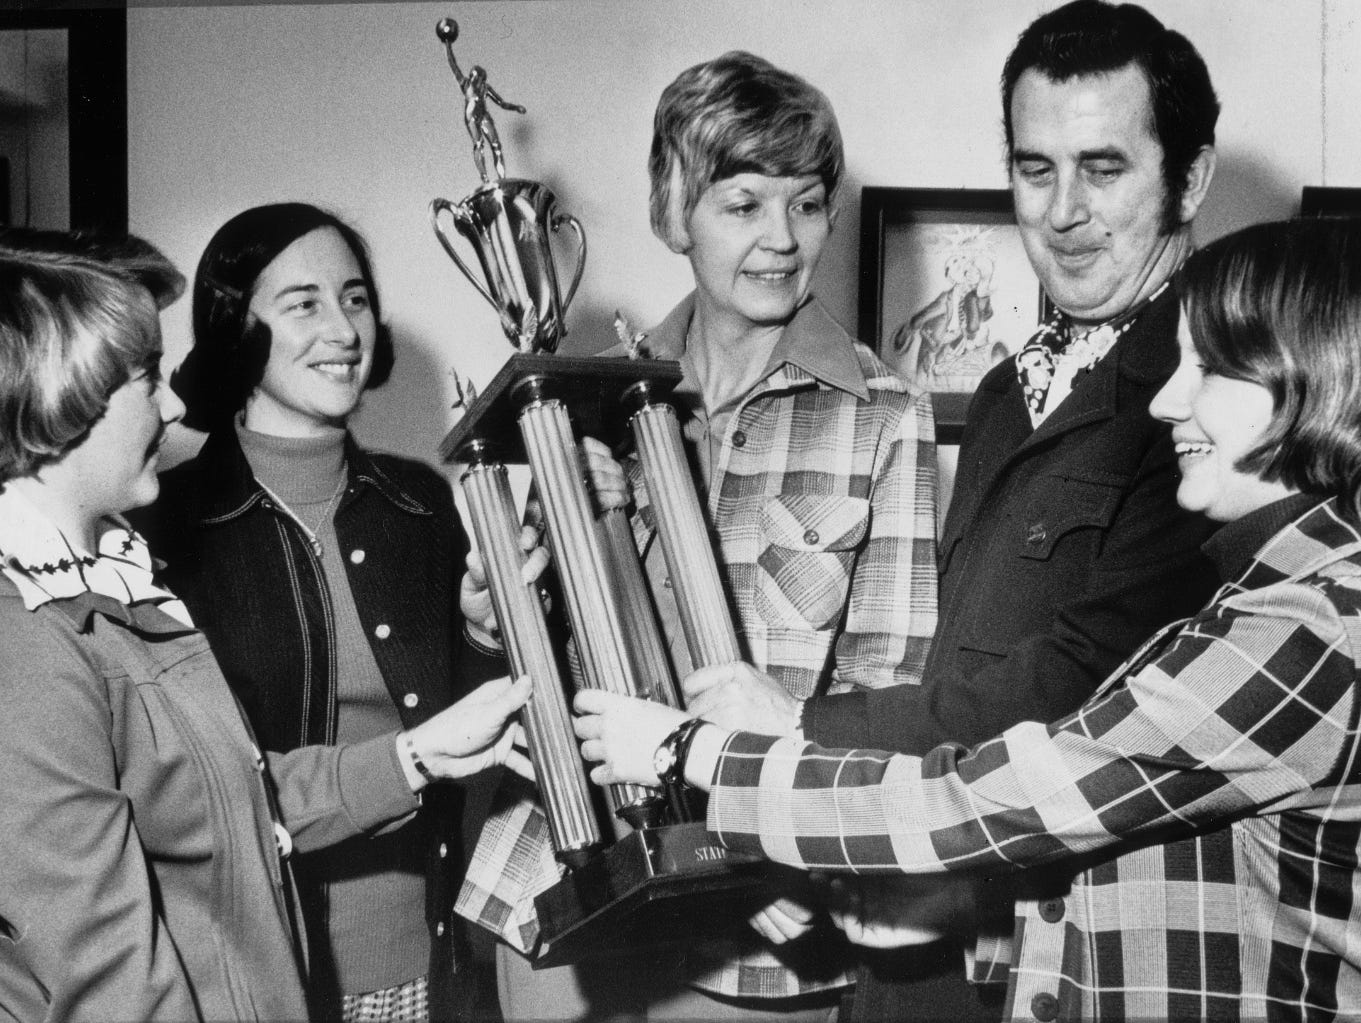 The IHSAA's Patricia Roy (center) shows the girls basketball state championship trophy to the representatives of the four teams at the 1976 state championship: Bloomfield's Nancy L. Woodward (from left), Warsaw's Janie N. Soyez, East Chicago Roosevelt's Matt Carr and Tech's Susan Jahnke.